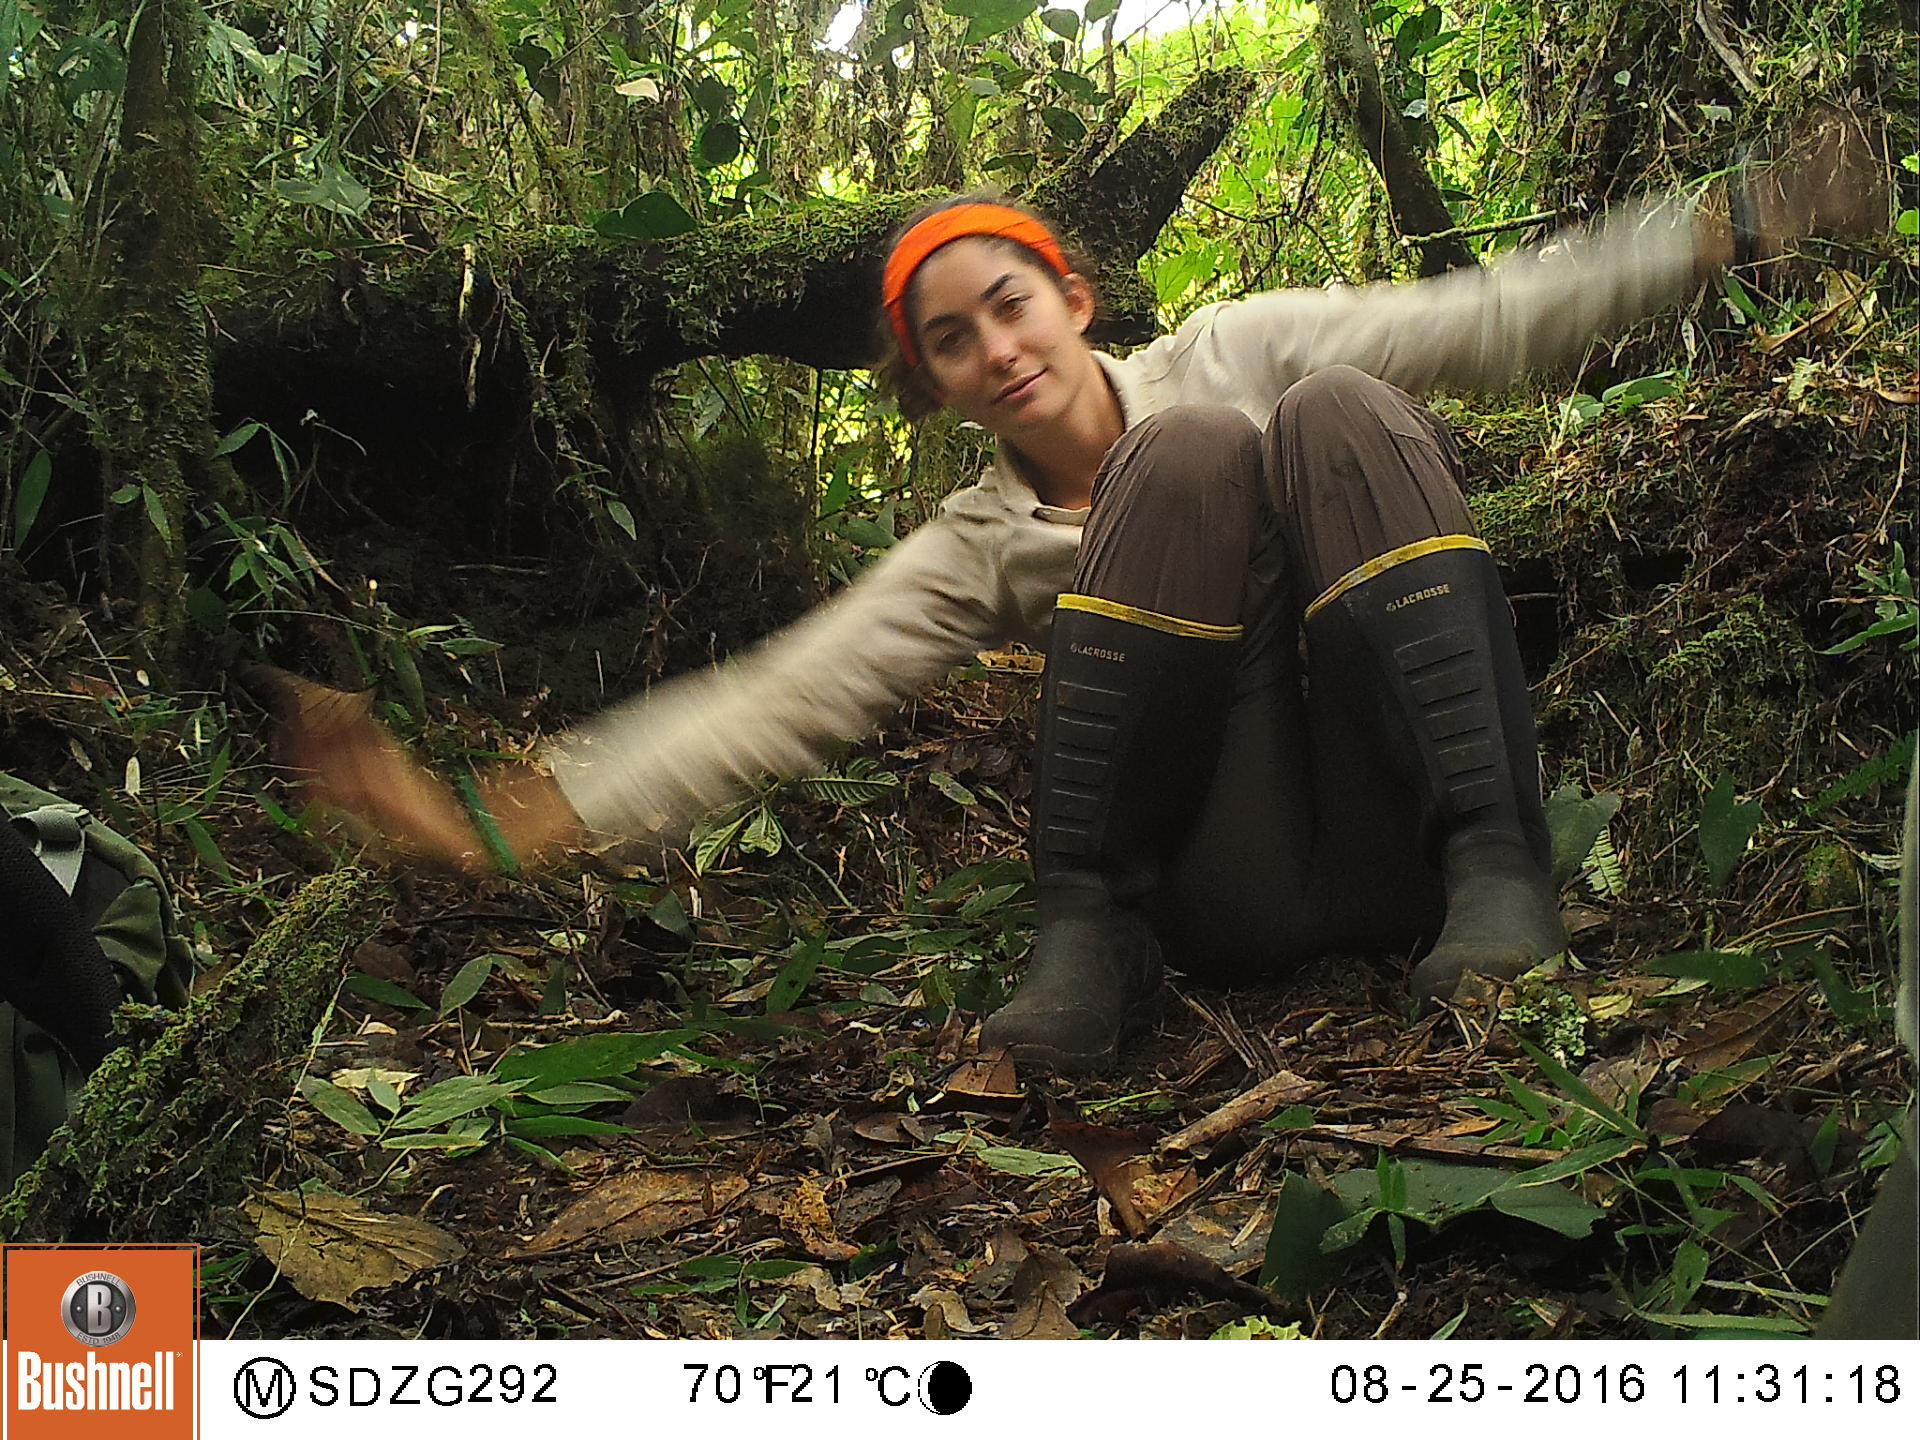 Flynn Vickowski helping test the function and placement of a camera trap.